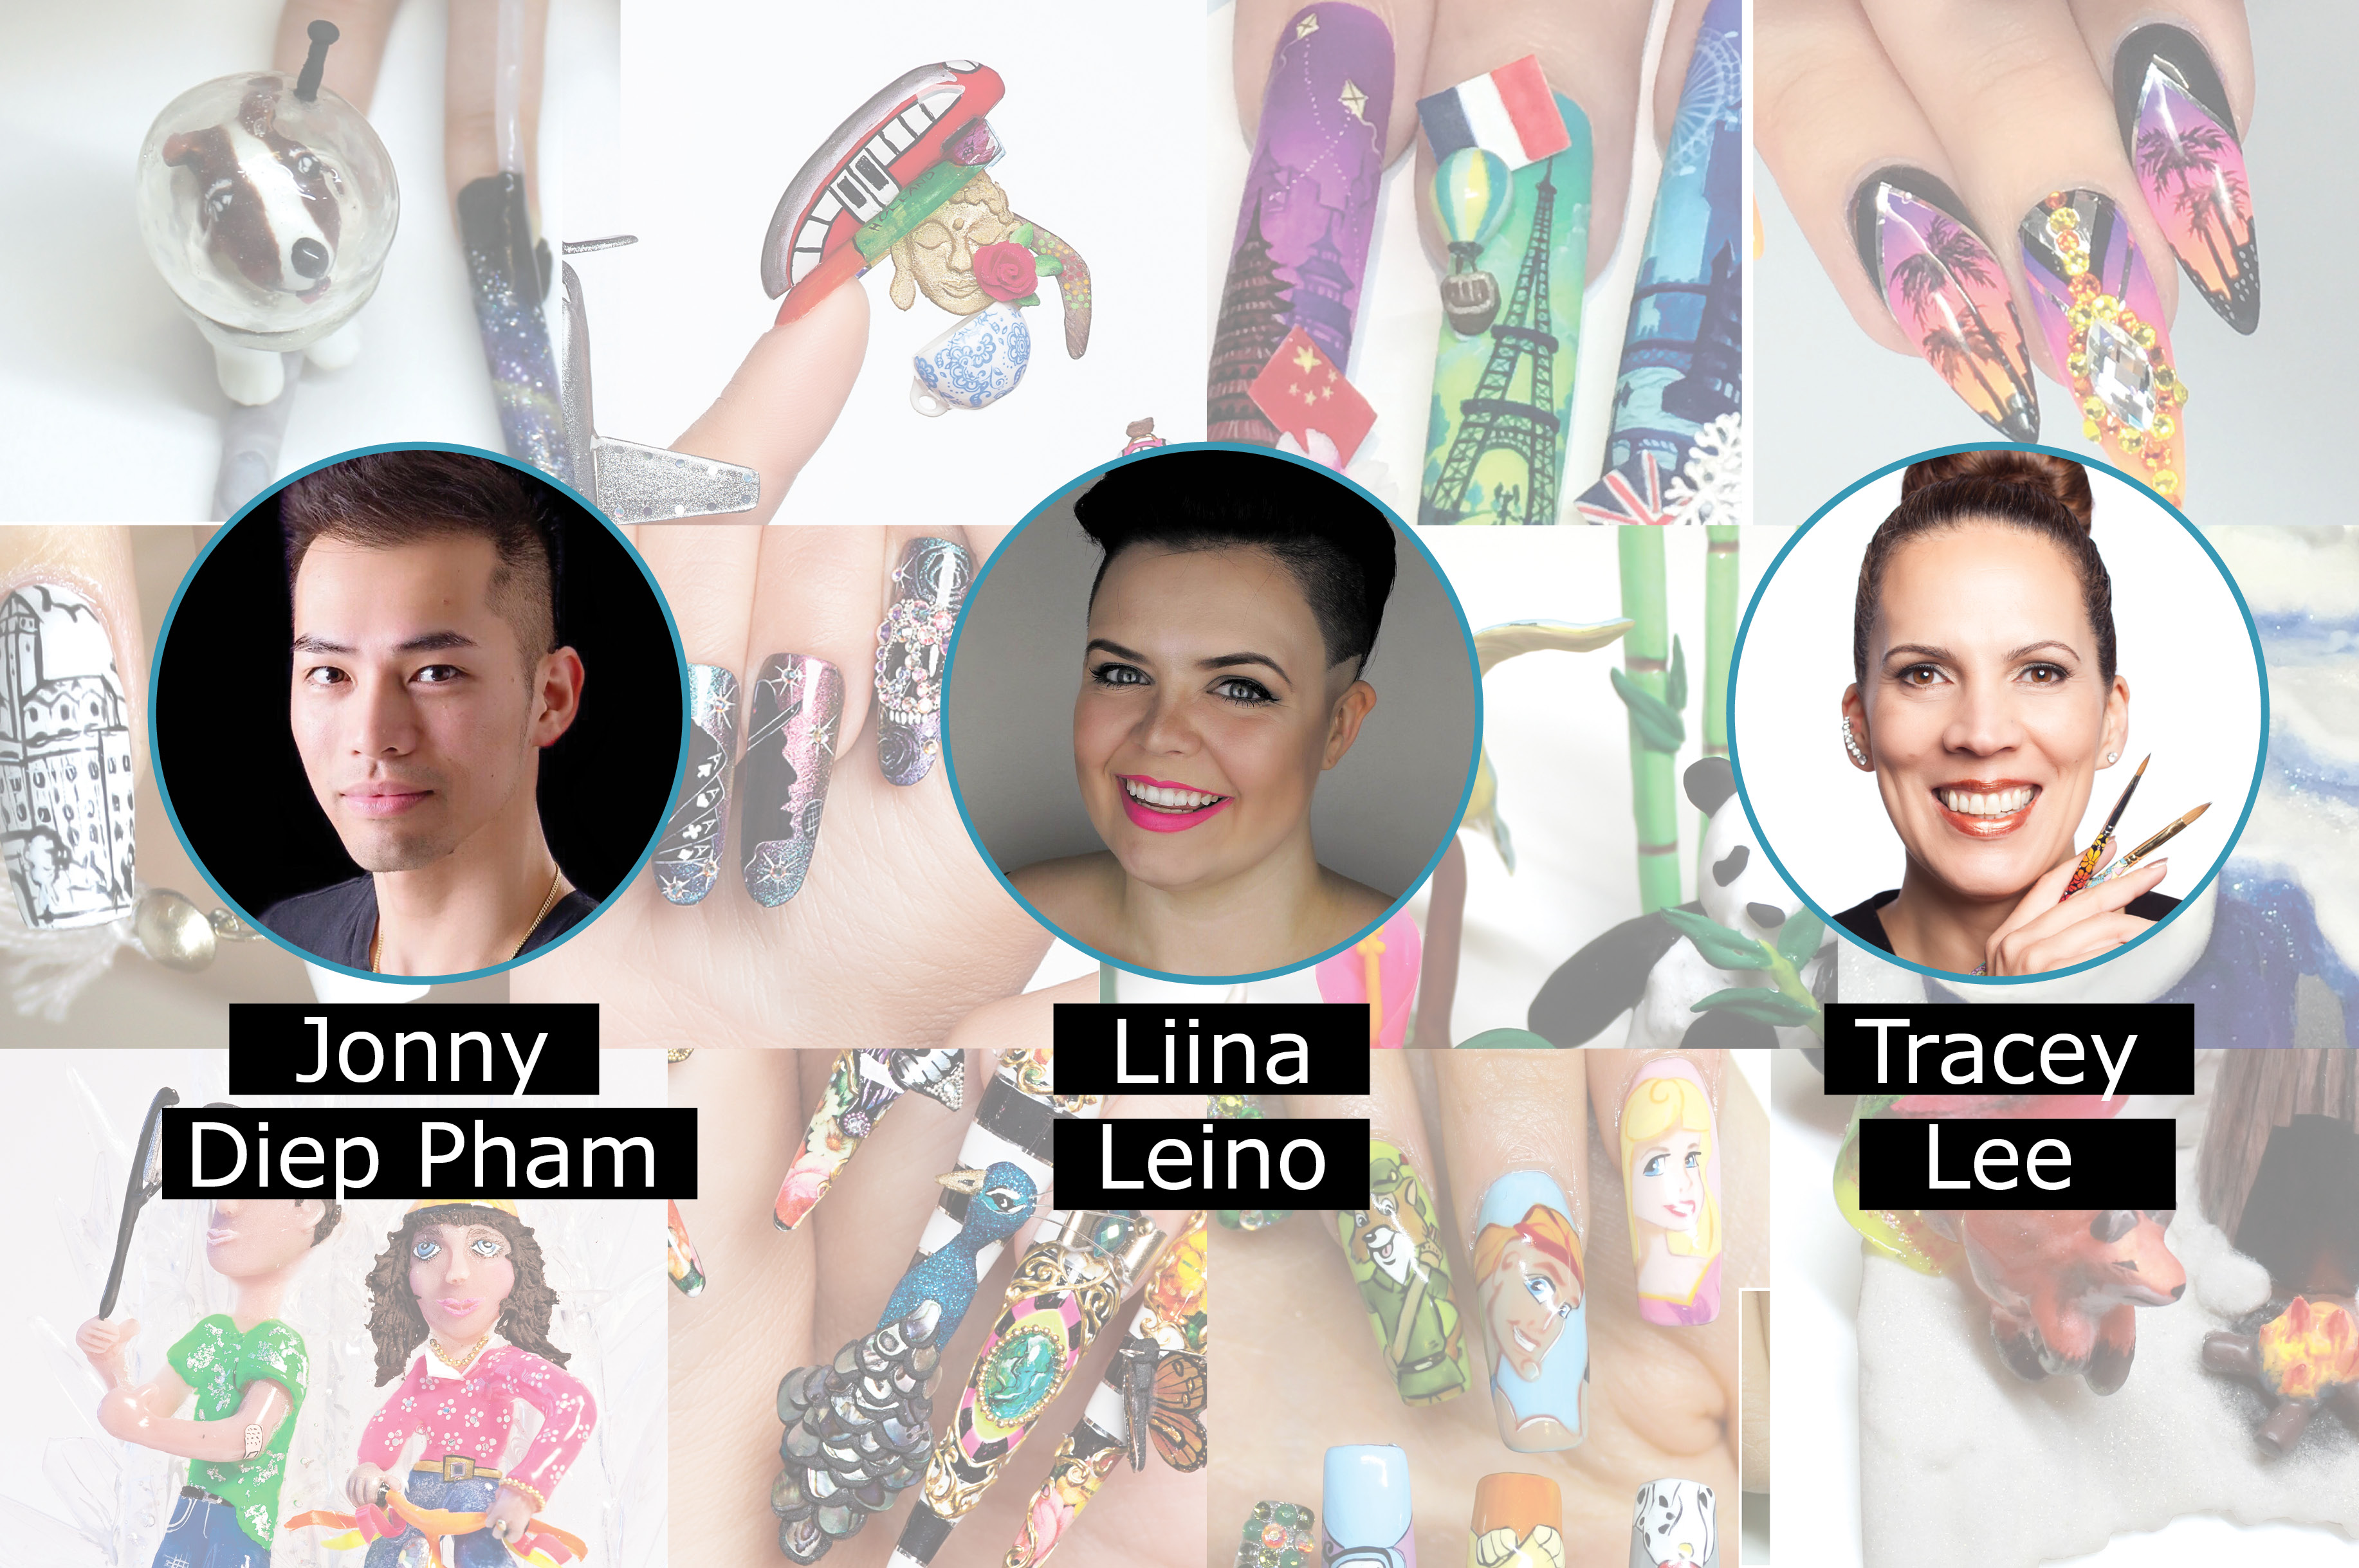 NAILS Next Top Nail Artist Awards Ceremony & Party Information